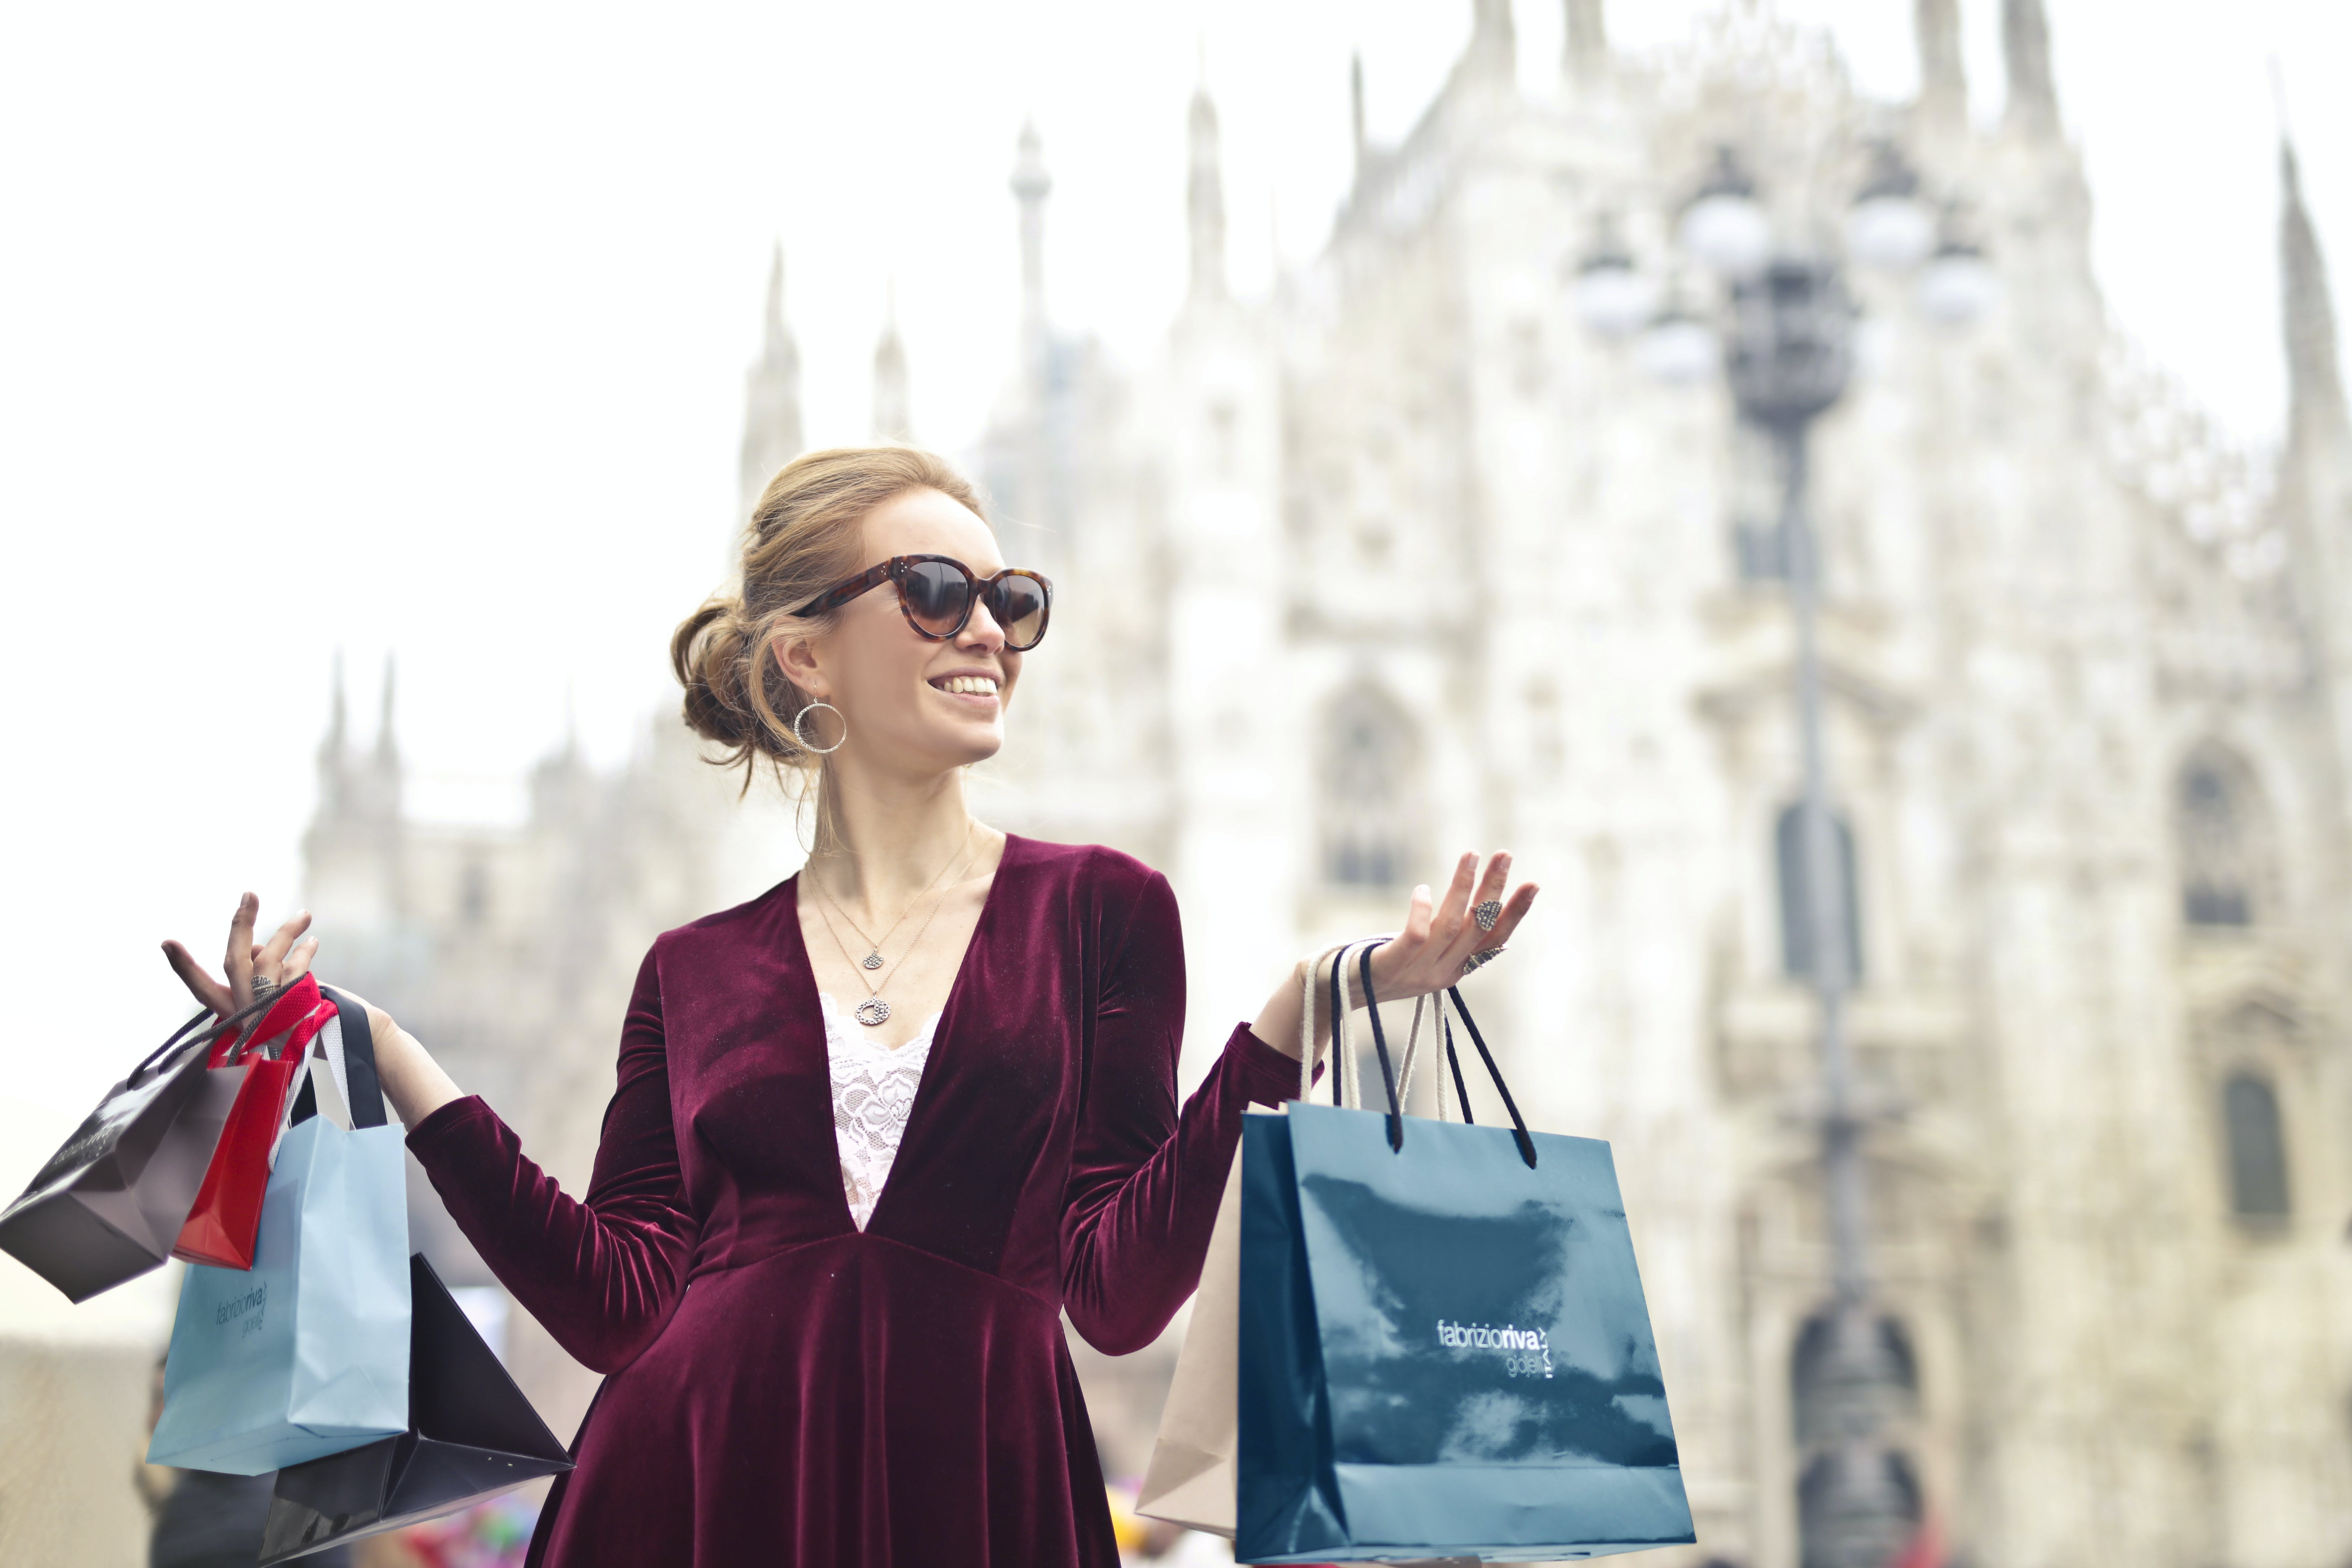 Woman Wearing Maroon Velvet Plunge-neck Long-sleeved Dress While Carrying Several Paper Bags Photography